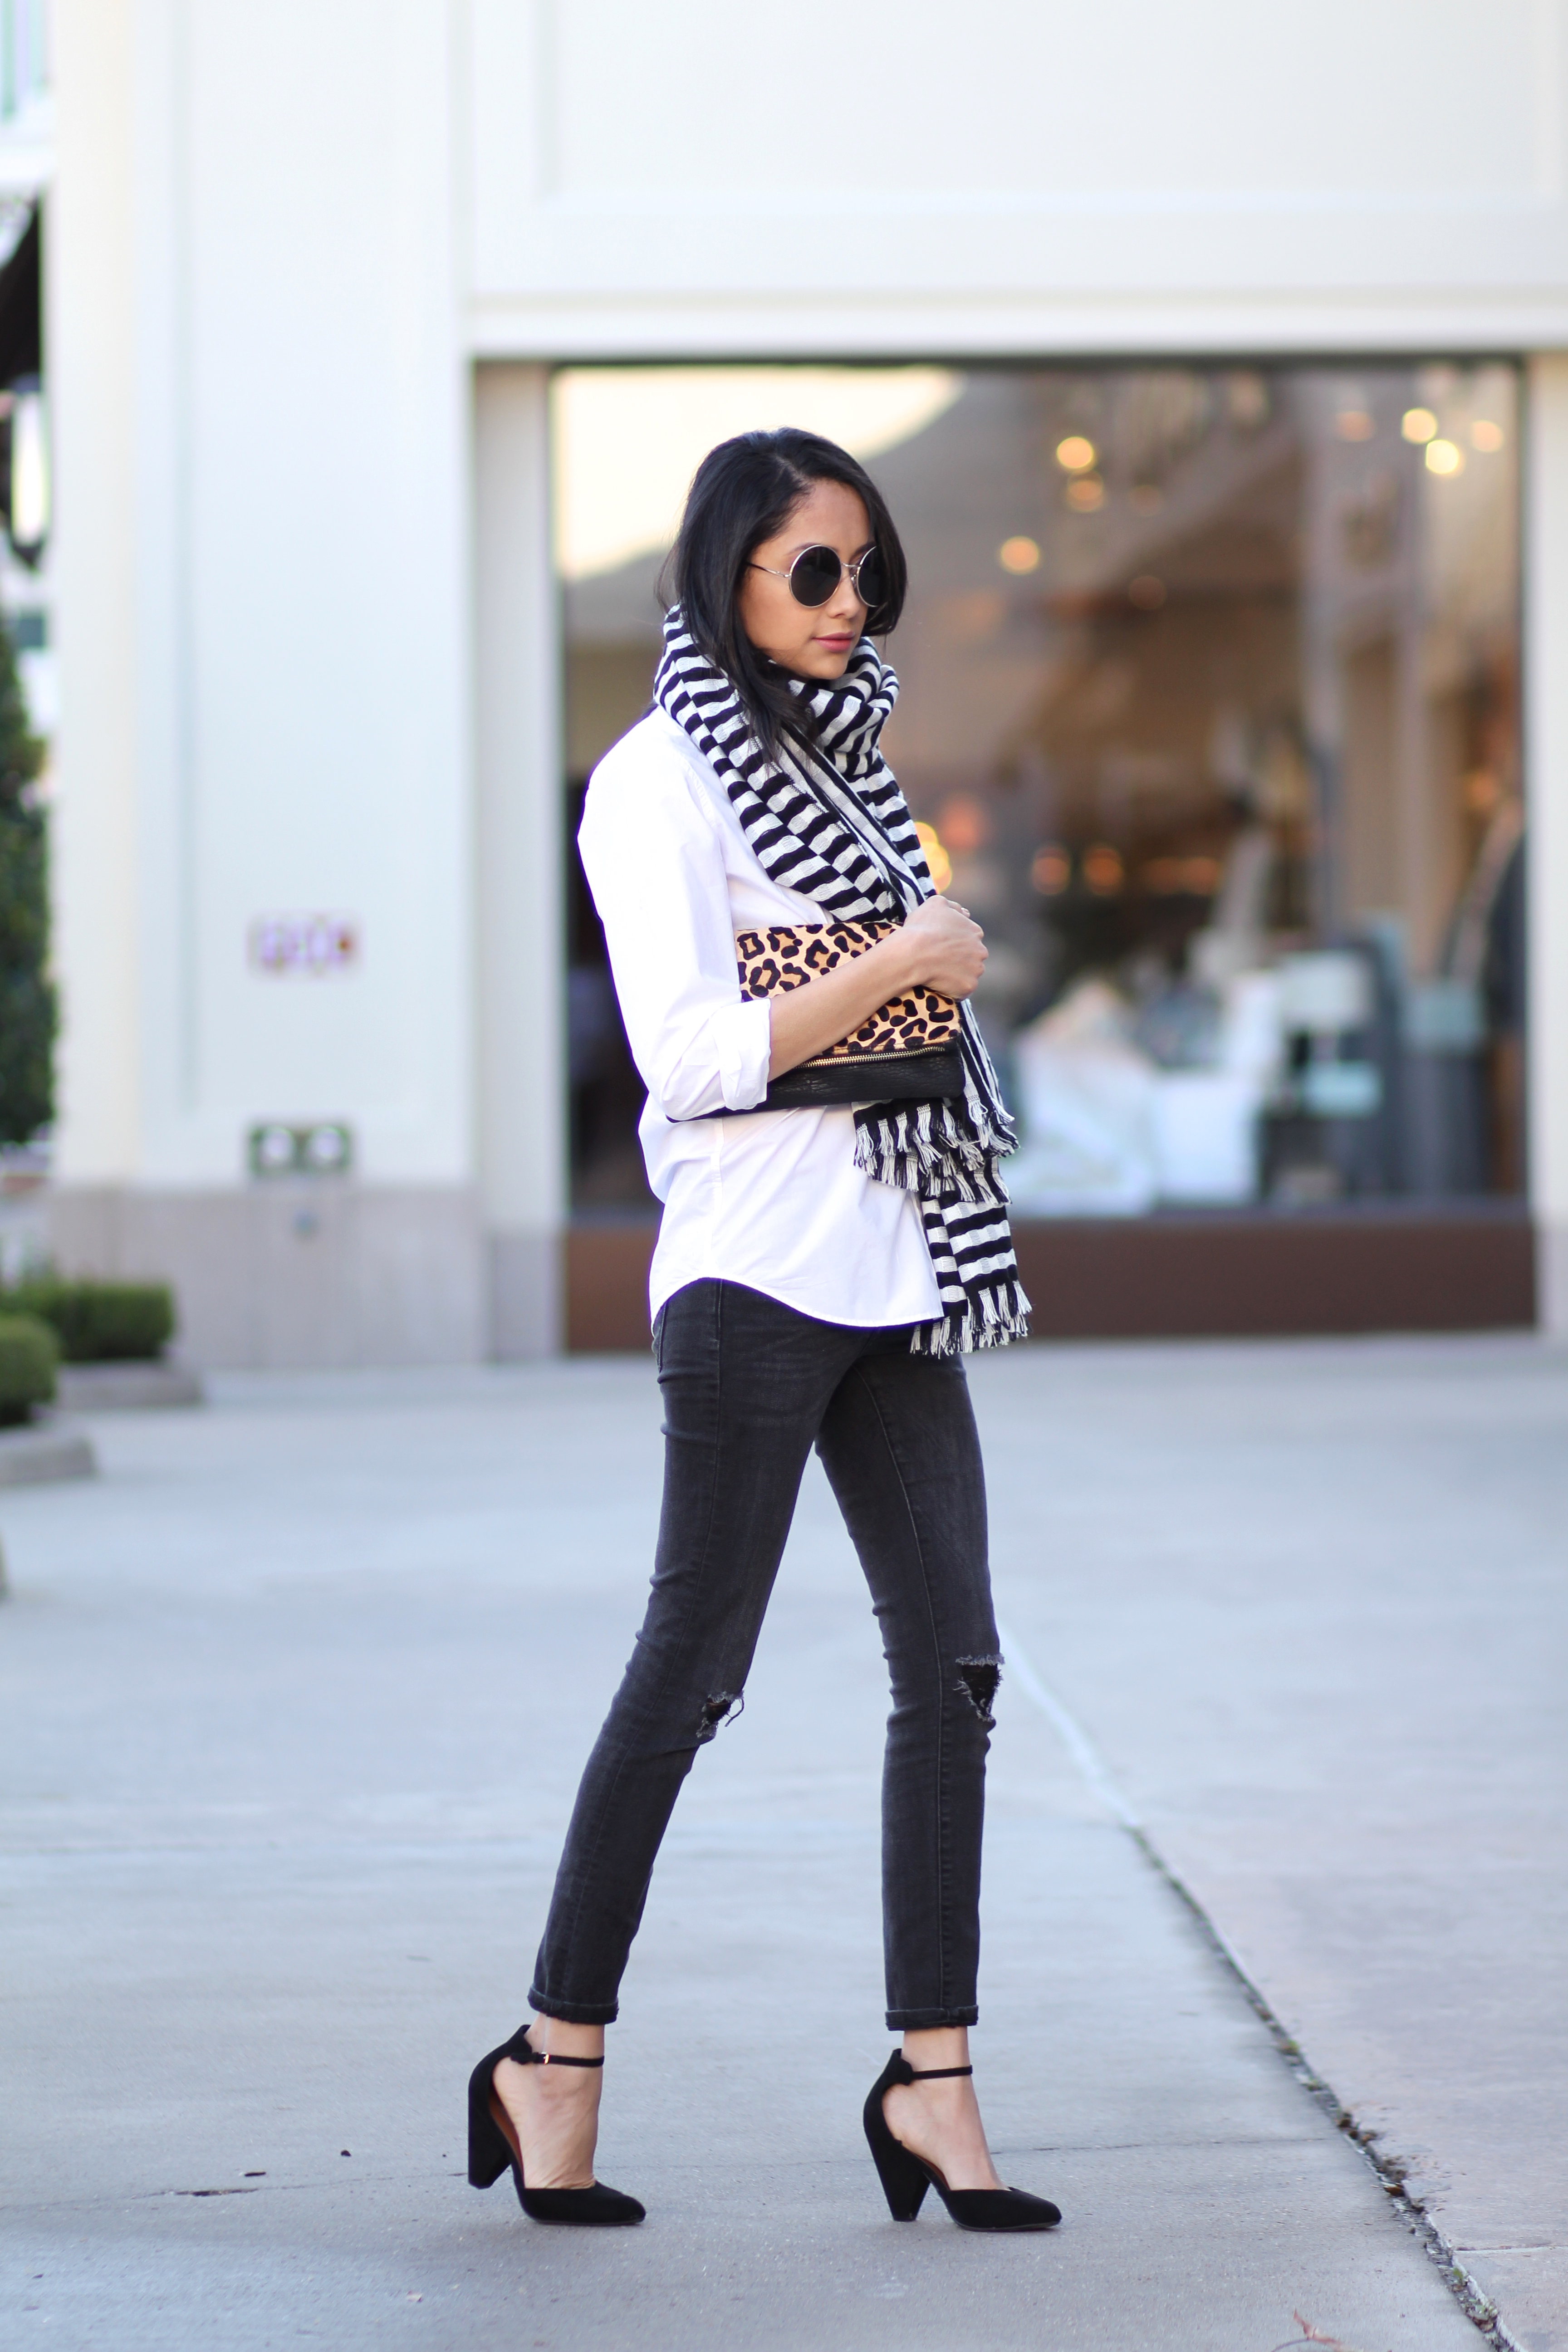 Lifestyle blogger Lilly Beltran in a casual fall look wearing a striped scarf and skinny jeans